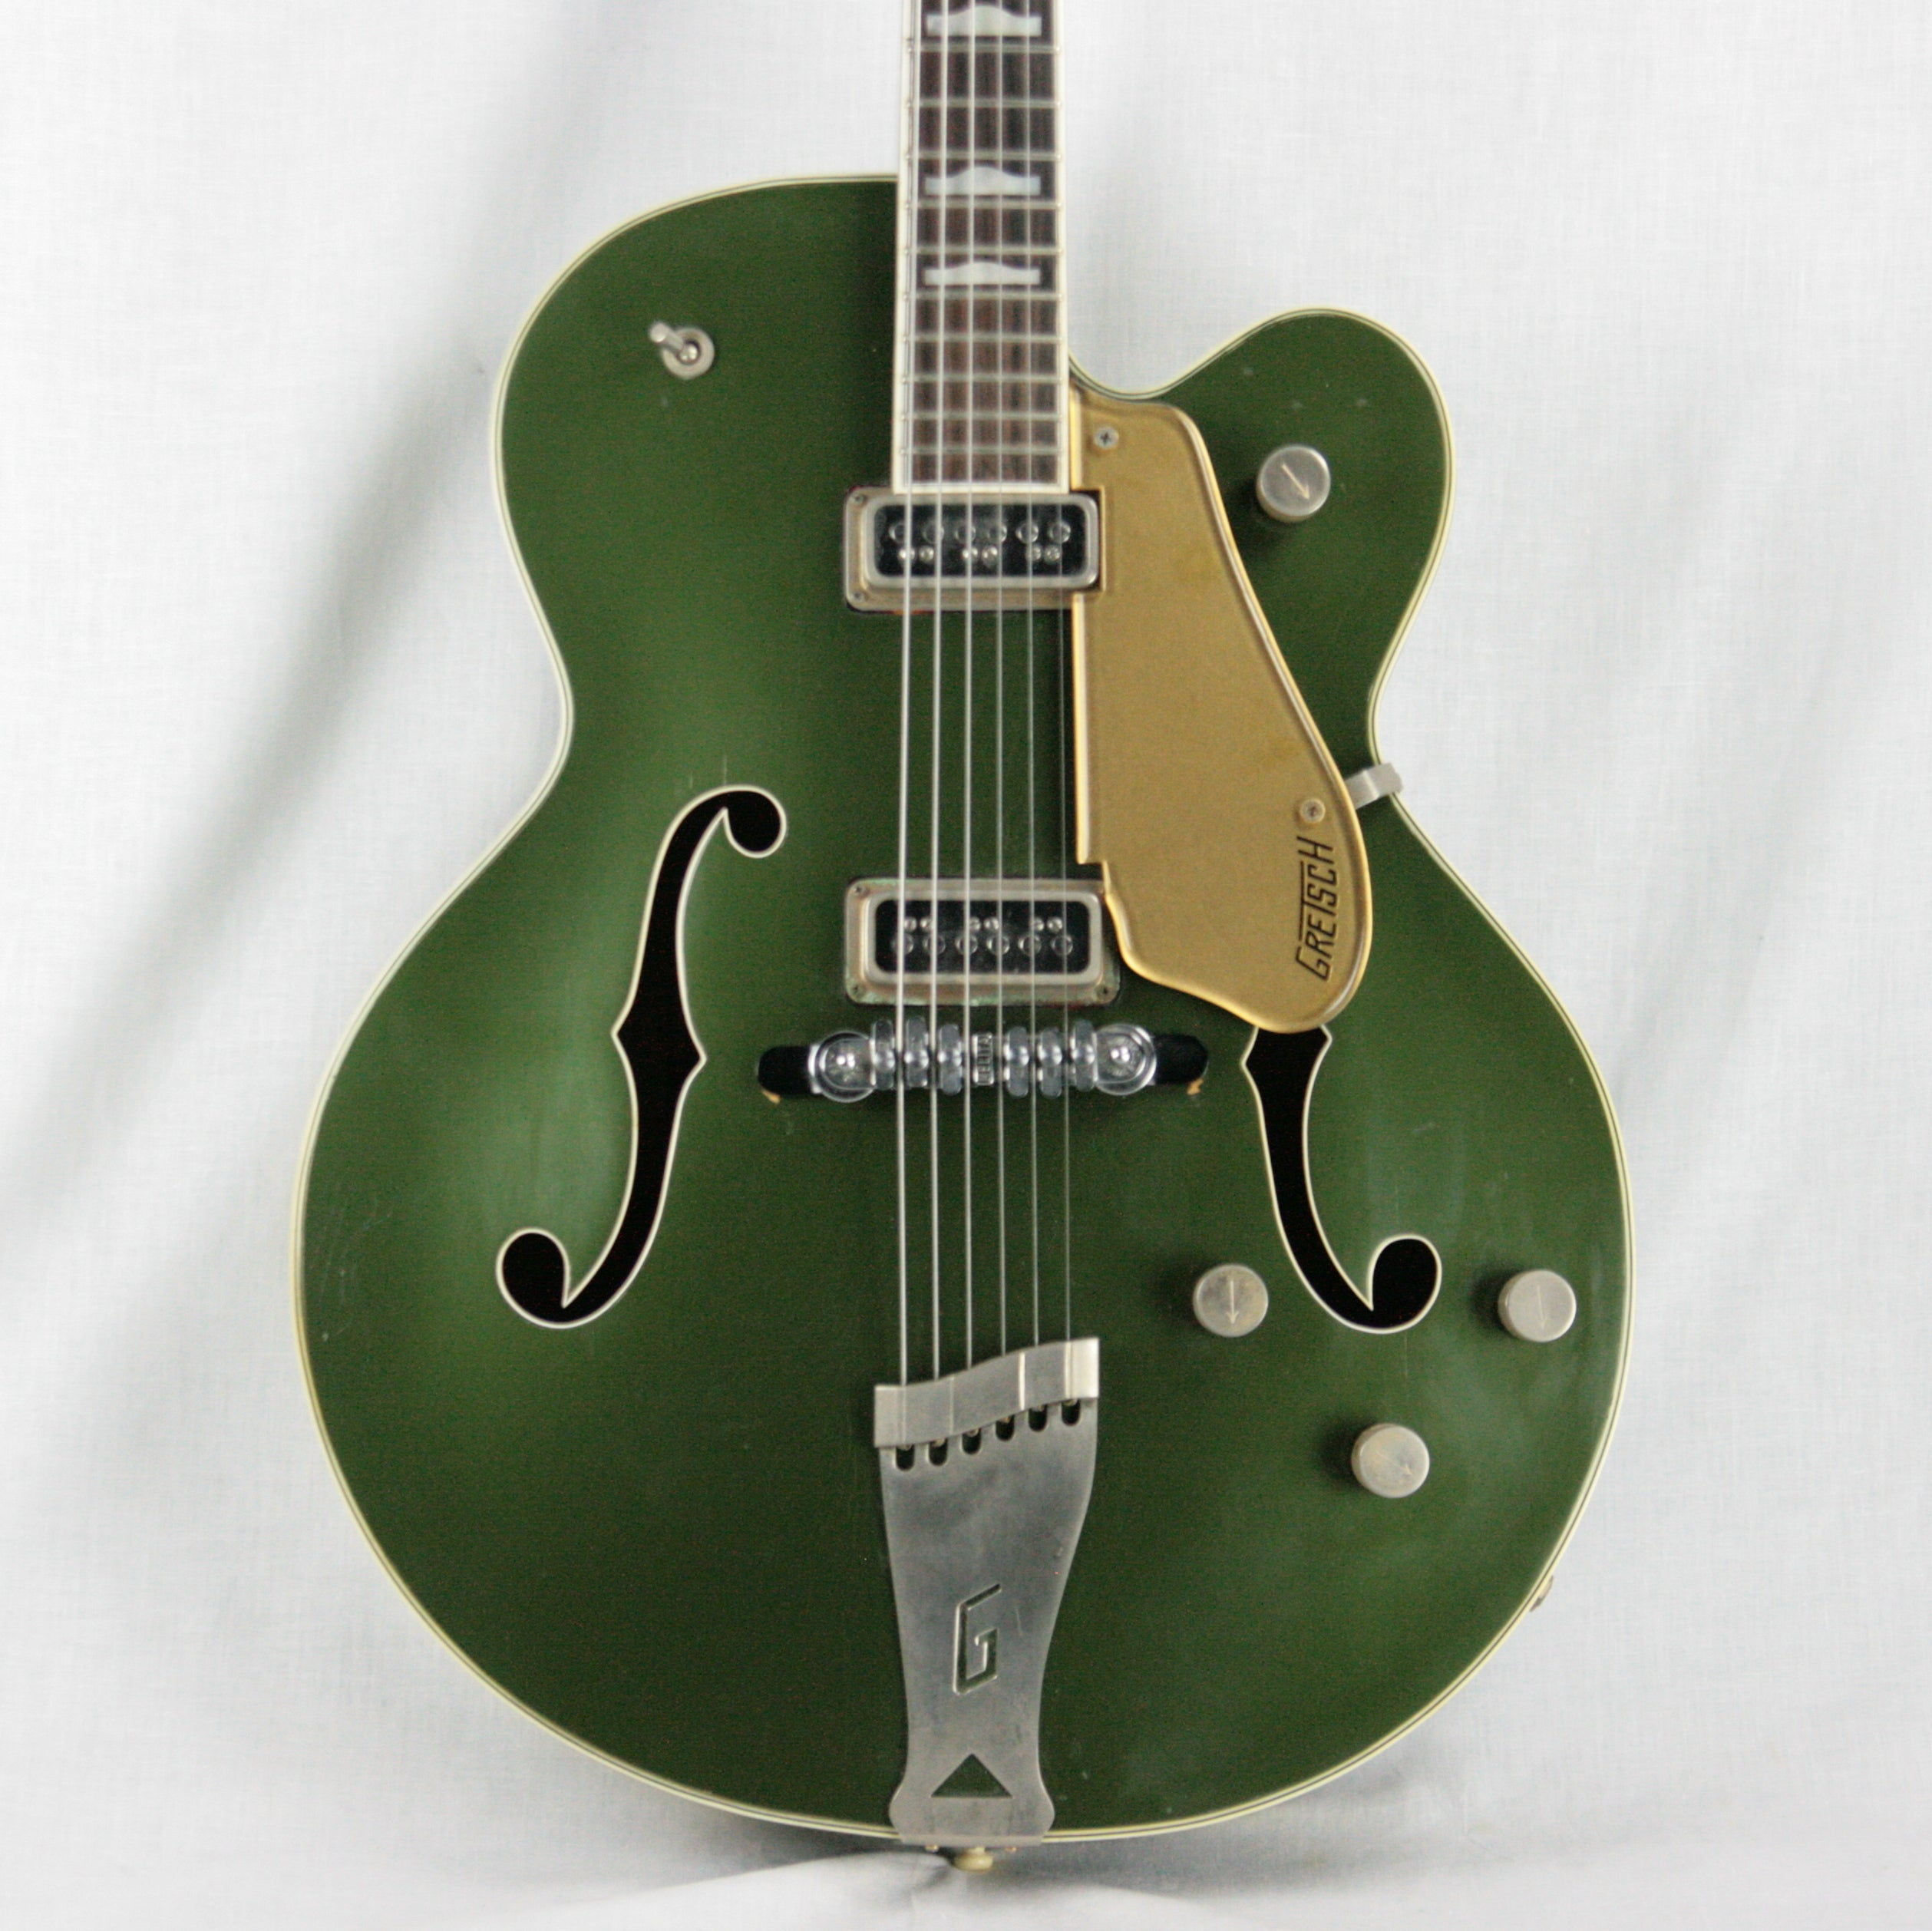 1956 Gretsch 6196 Country Club CADILLAC GREEN w/ Dearmond Pickups! white falcon size